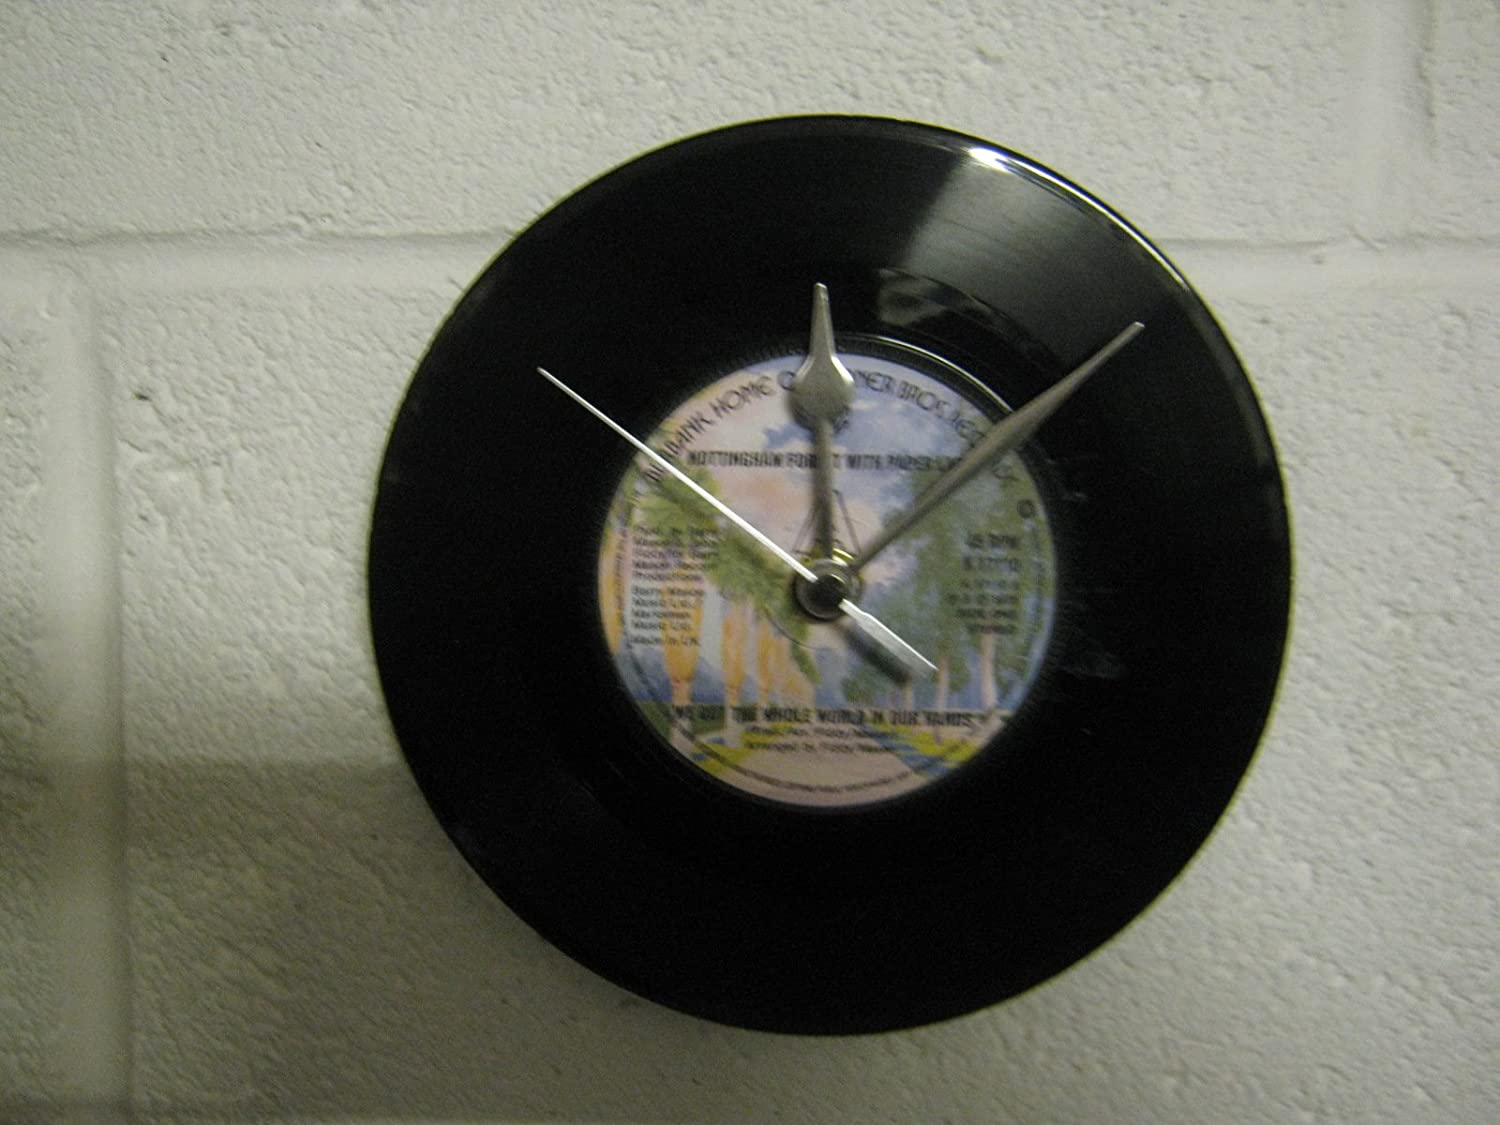 7 Vinyl Record Wall Clock Nottingham Forest We Got The Whole World In Our Hands